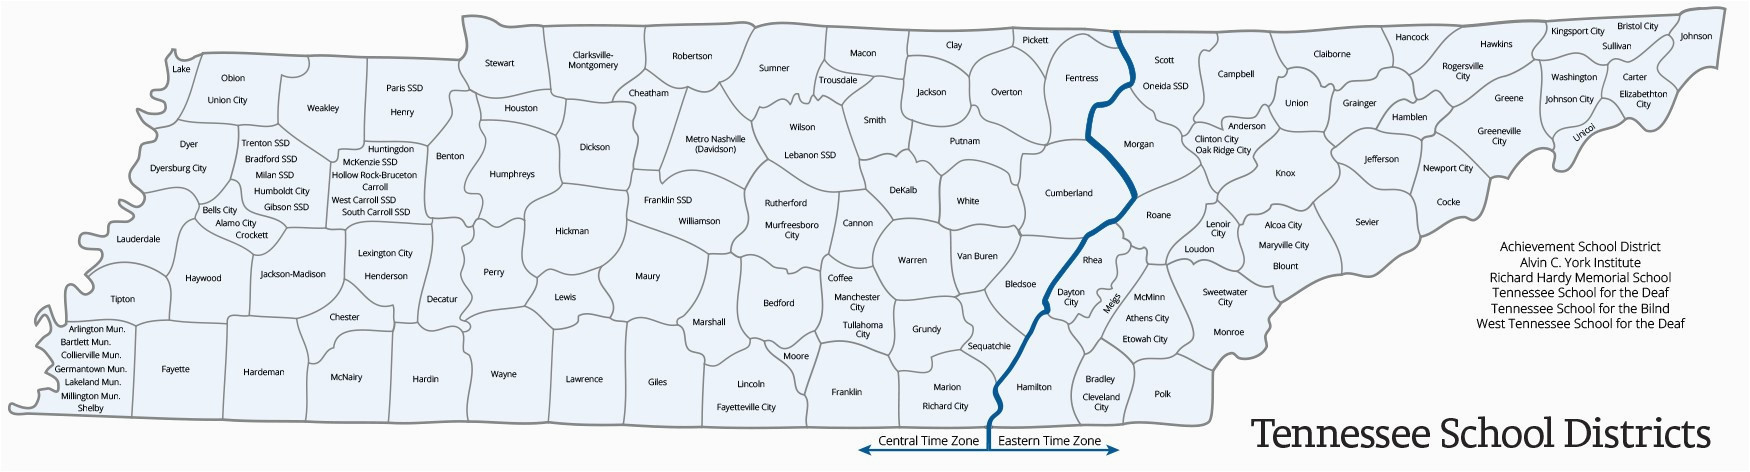 Us Time Zone Map Tennessee Tennessee Map With Time Zones   universe map travel and codes